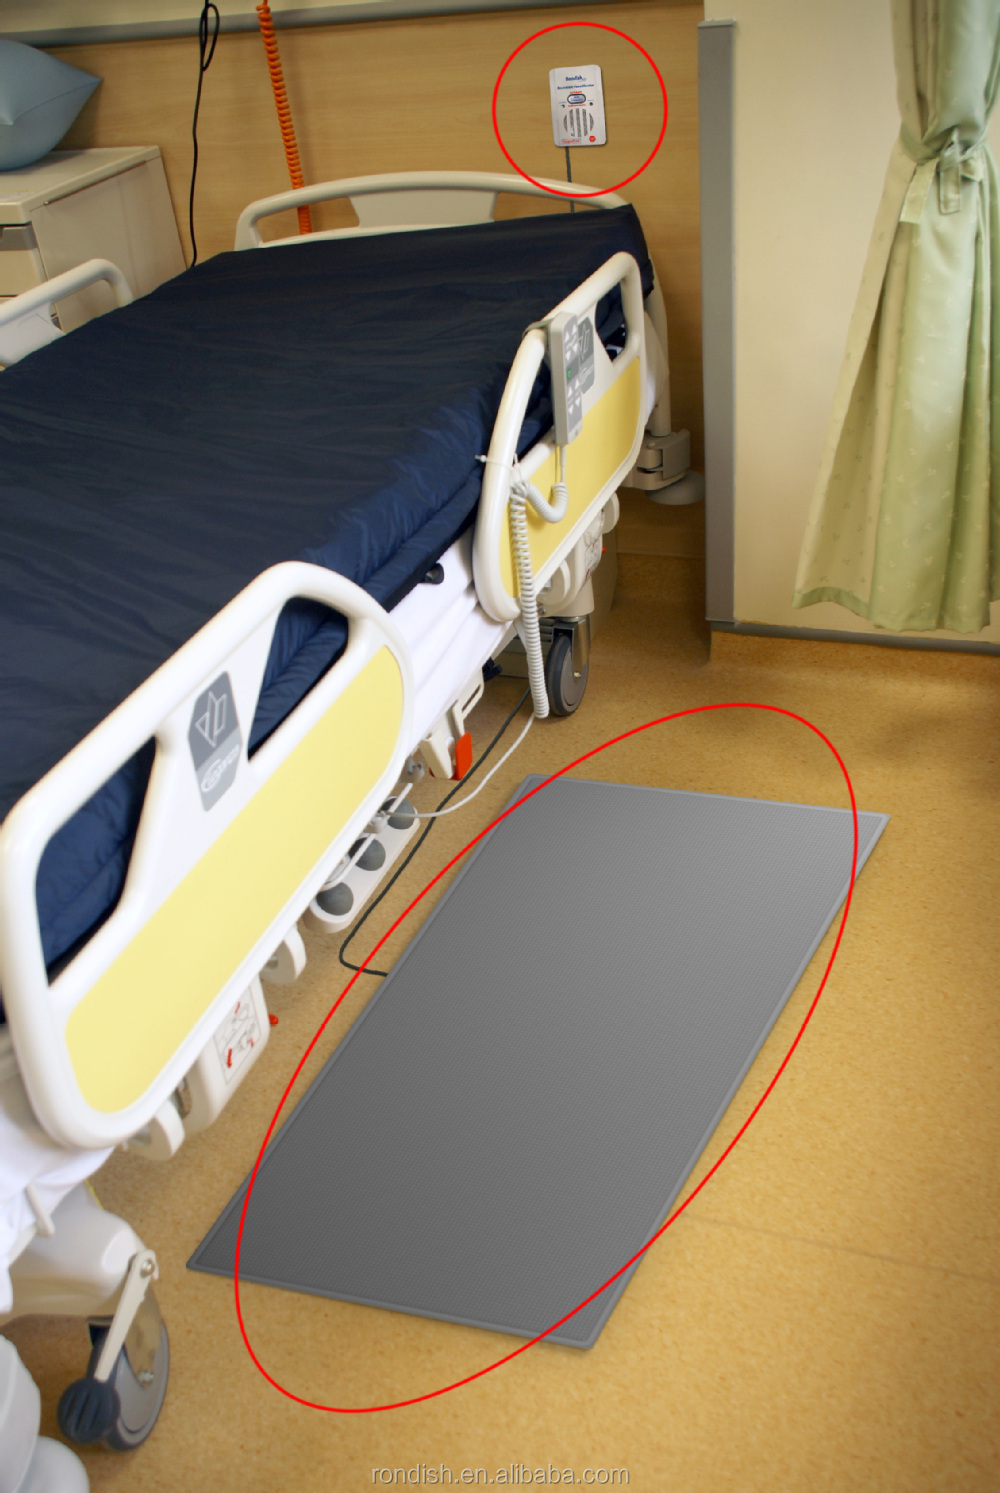 Healthcare Security Fall Prevention Amp Anti Wander For